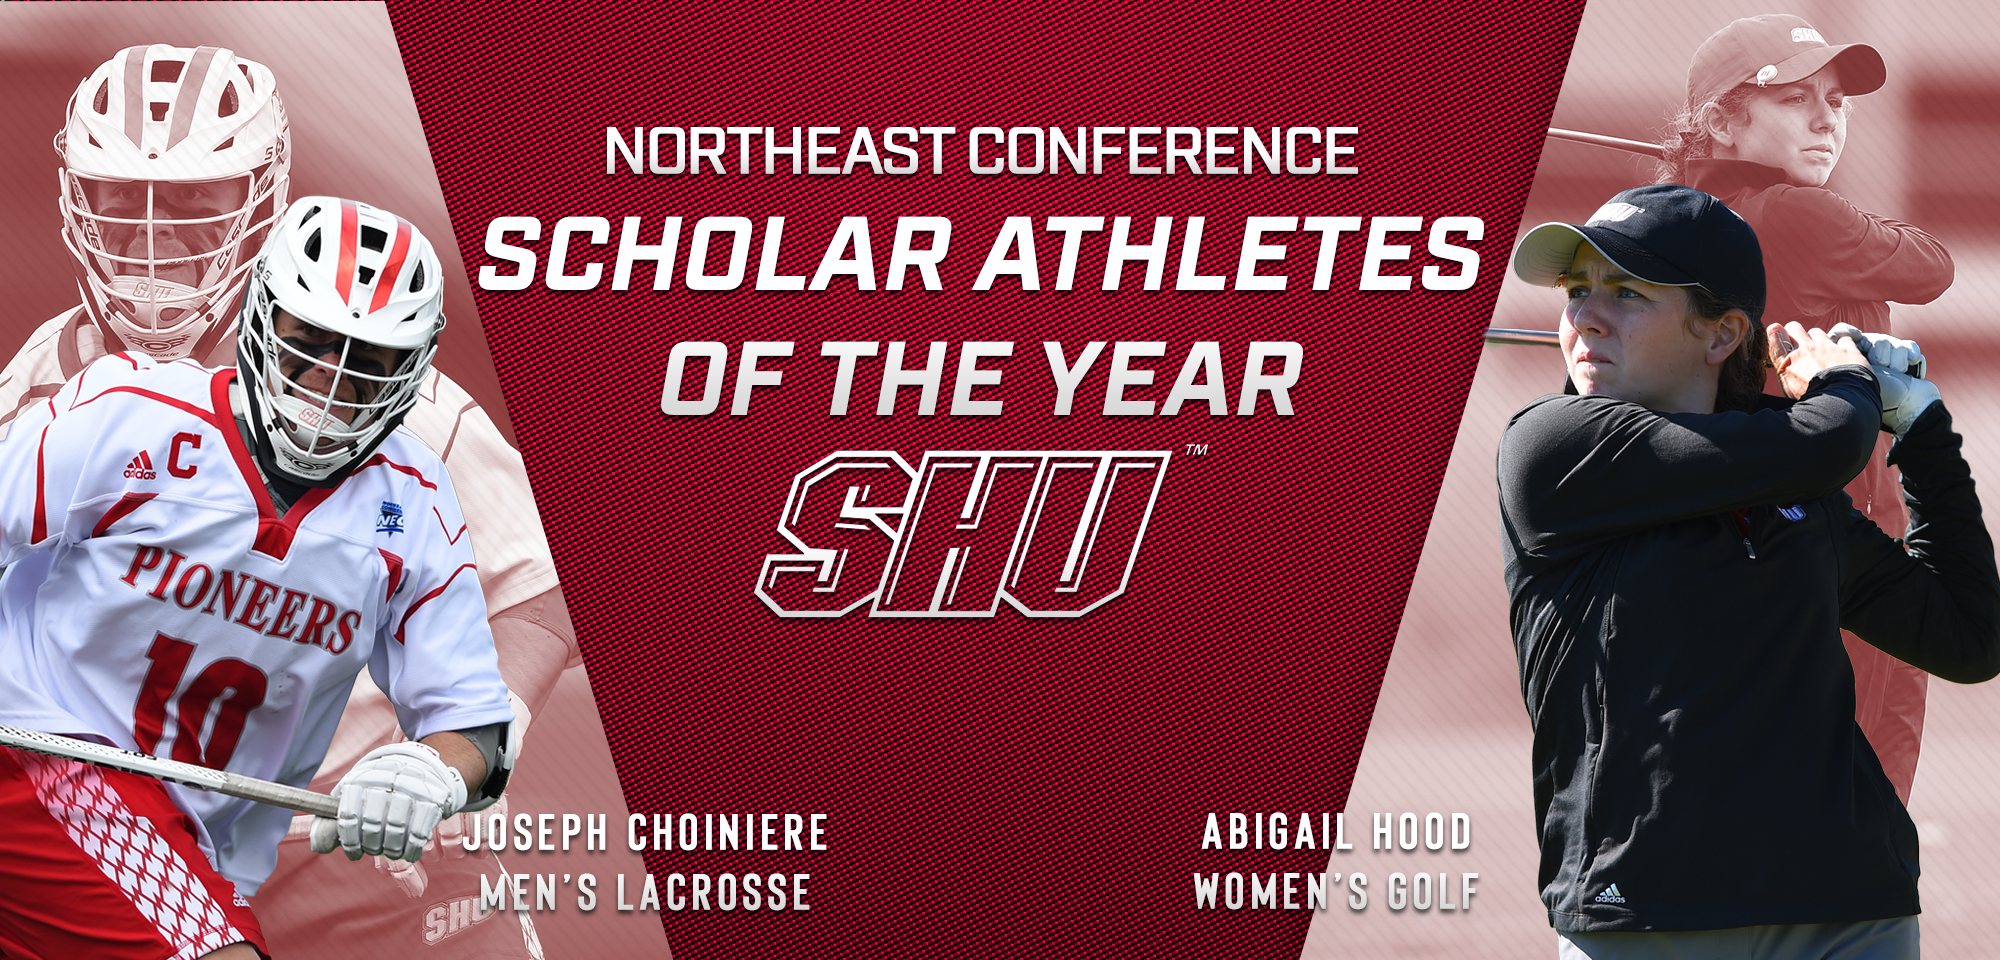 Abigail Hood and Joseph Choiniere earned 2018NEC Scholar-Athlete of the Year honors.